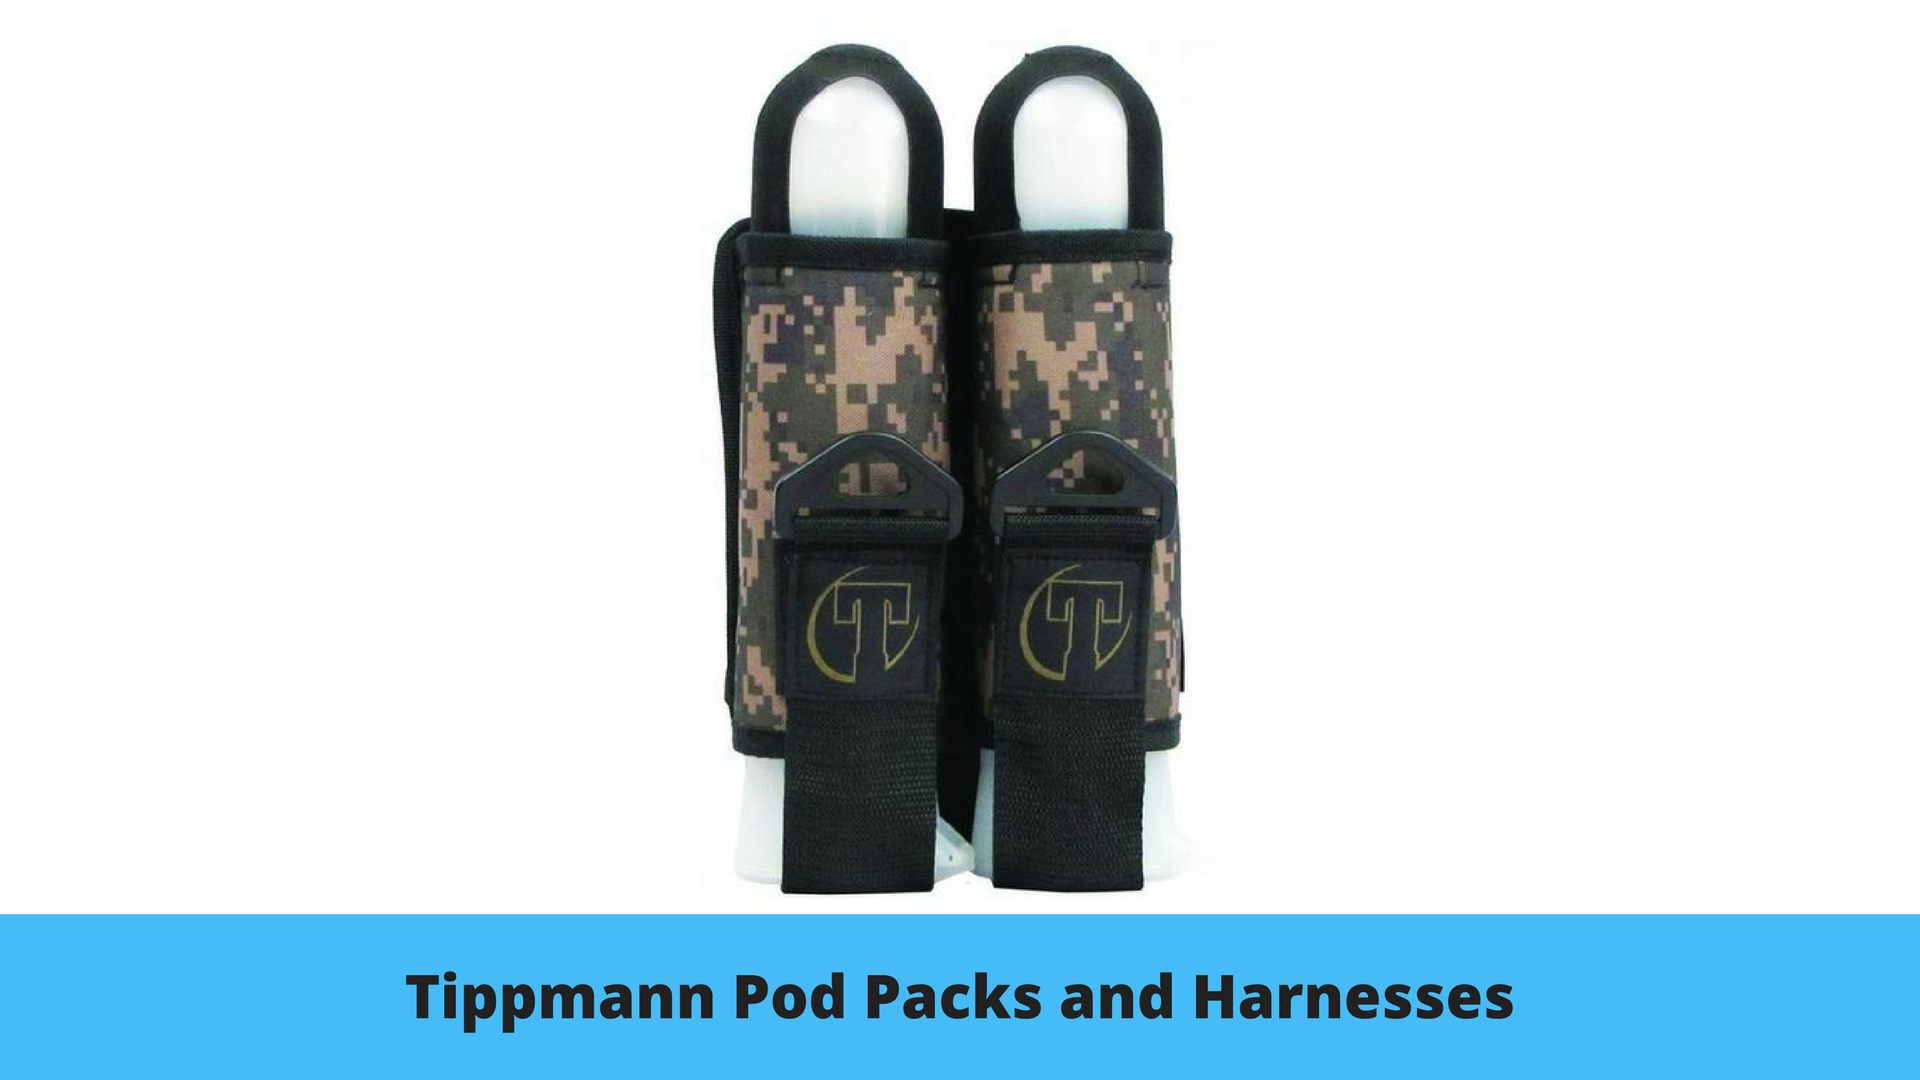 Tippmann Pod Packs and Harnesses